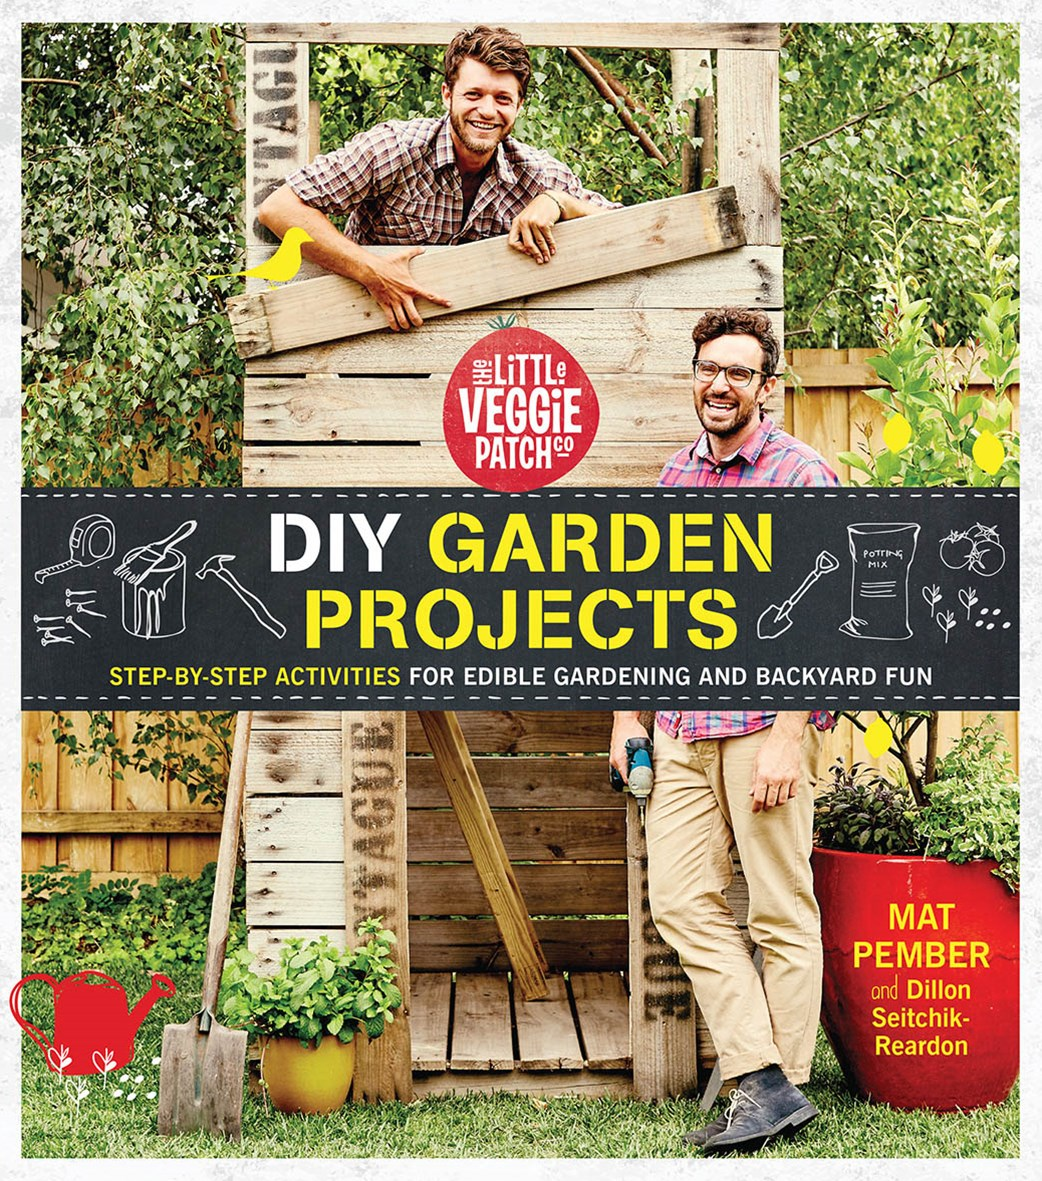 The Little Veggie Patch DIY for Edible Gardens